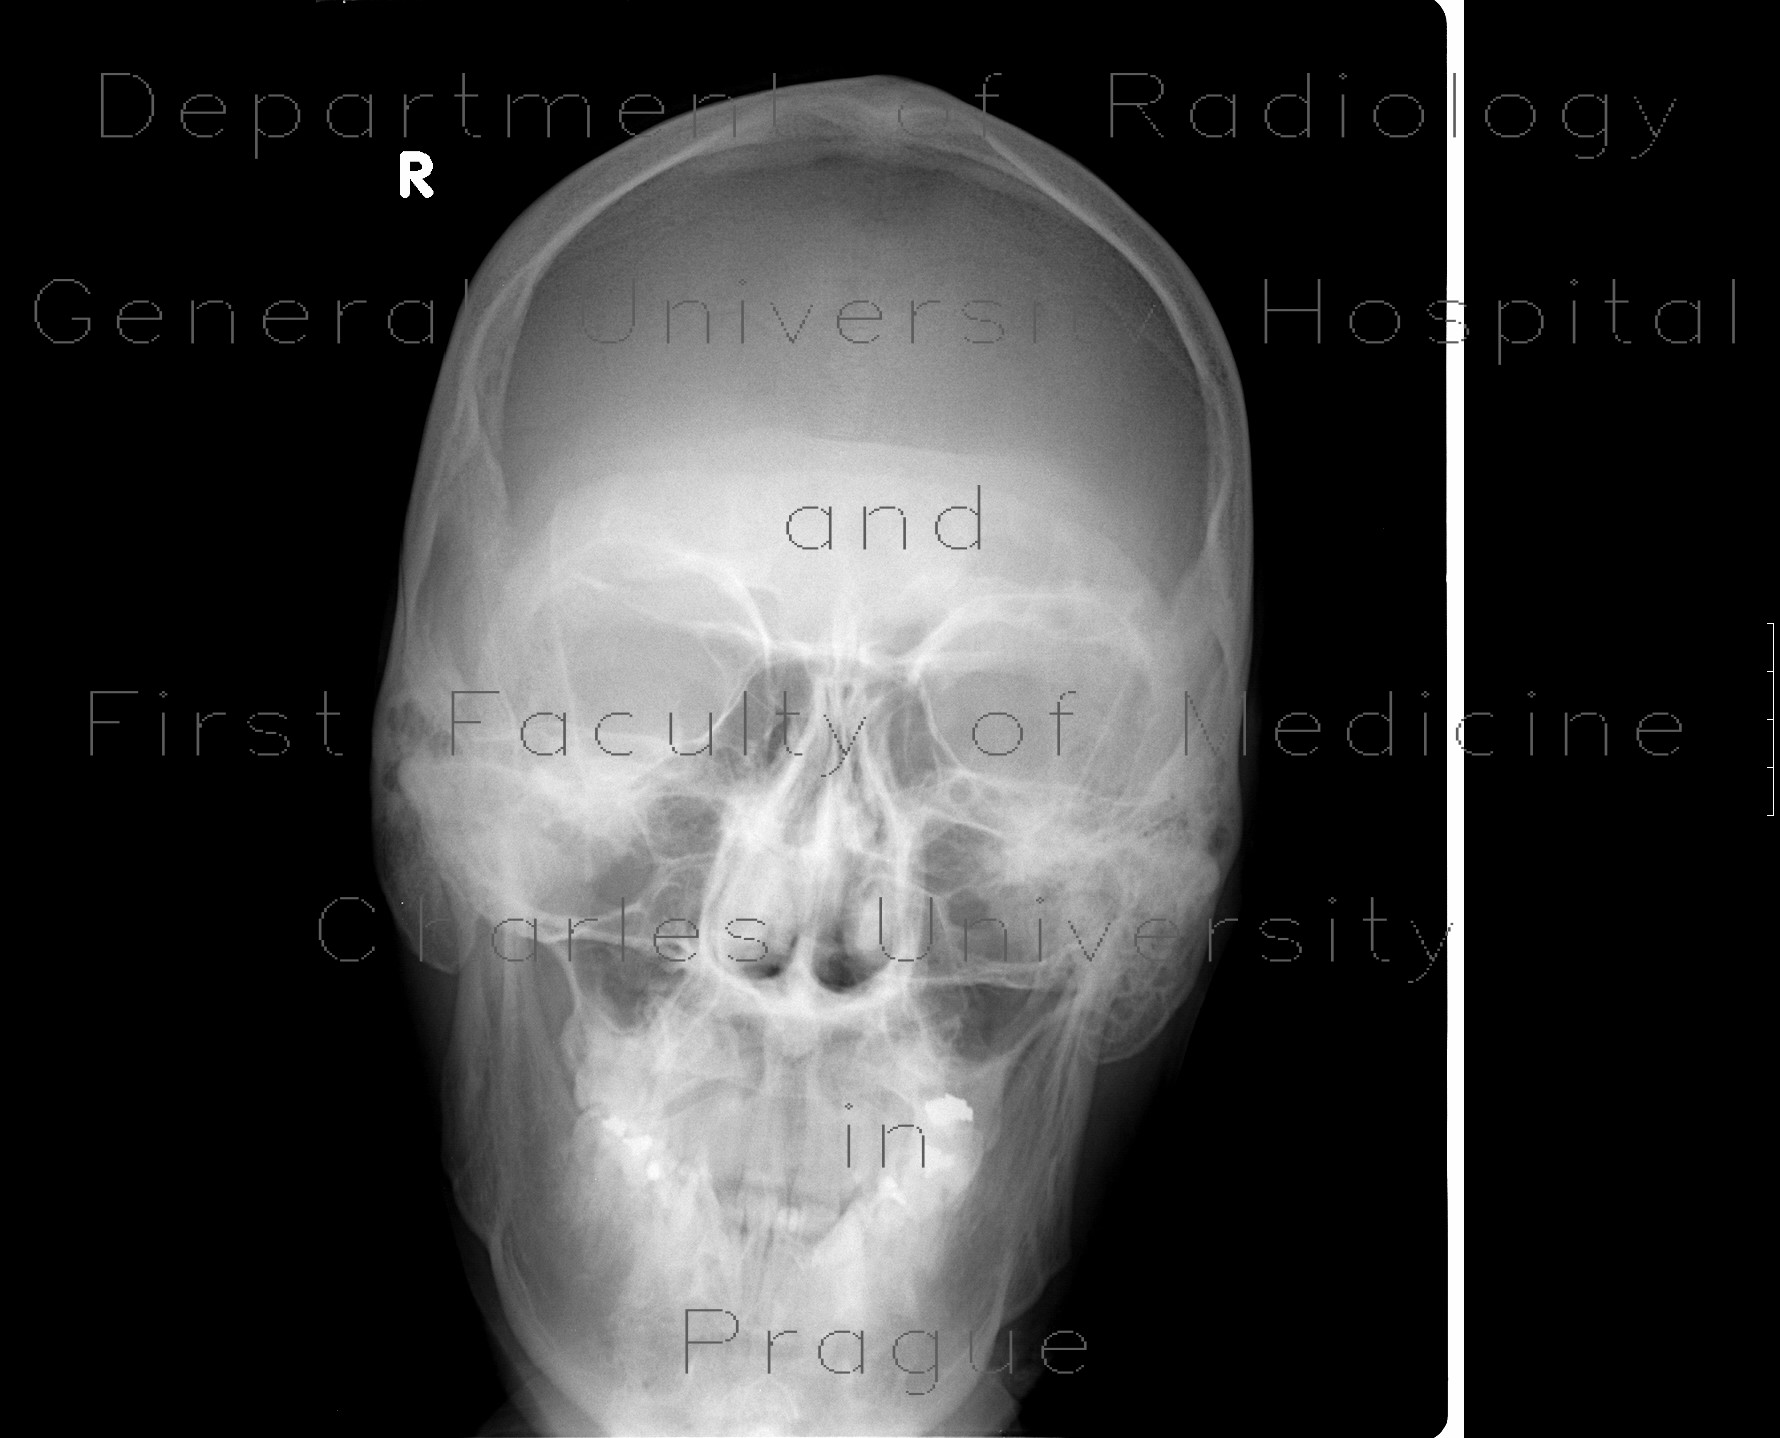 Radiology image - Craniotomy: Head and Neck, Bone: X-ray - Plain radiograph